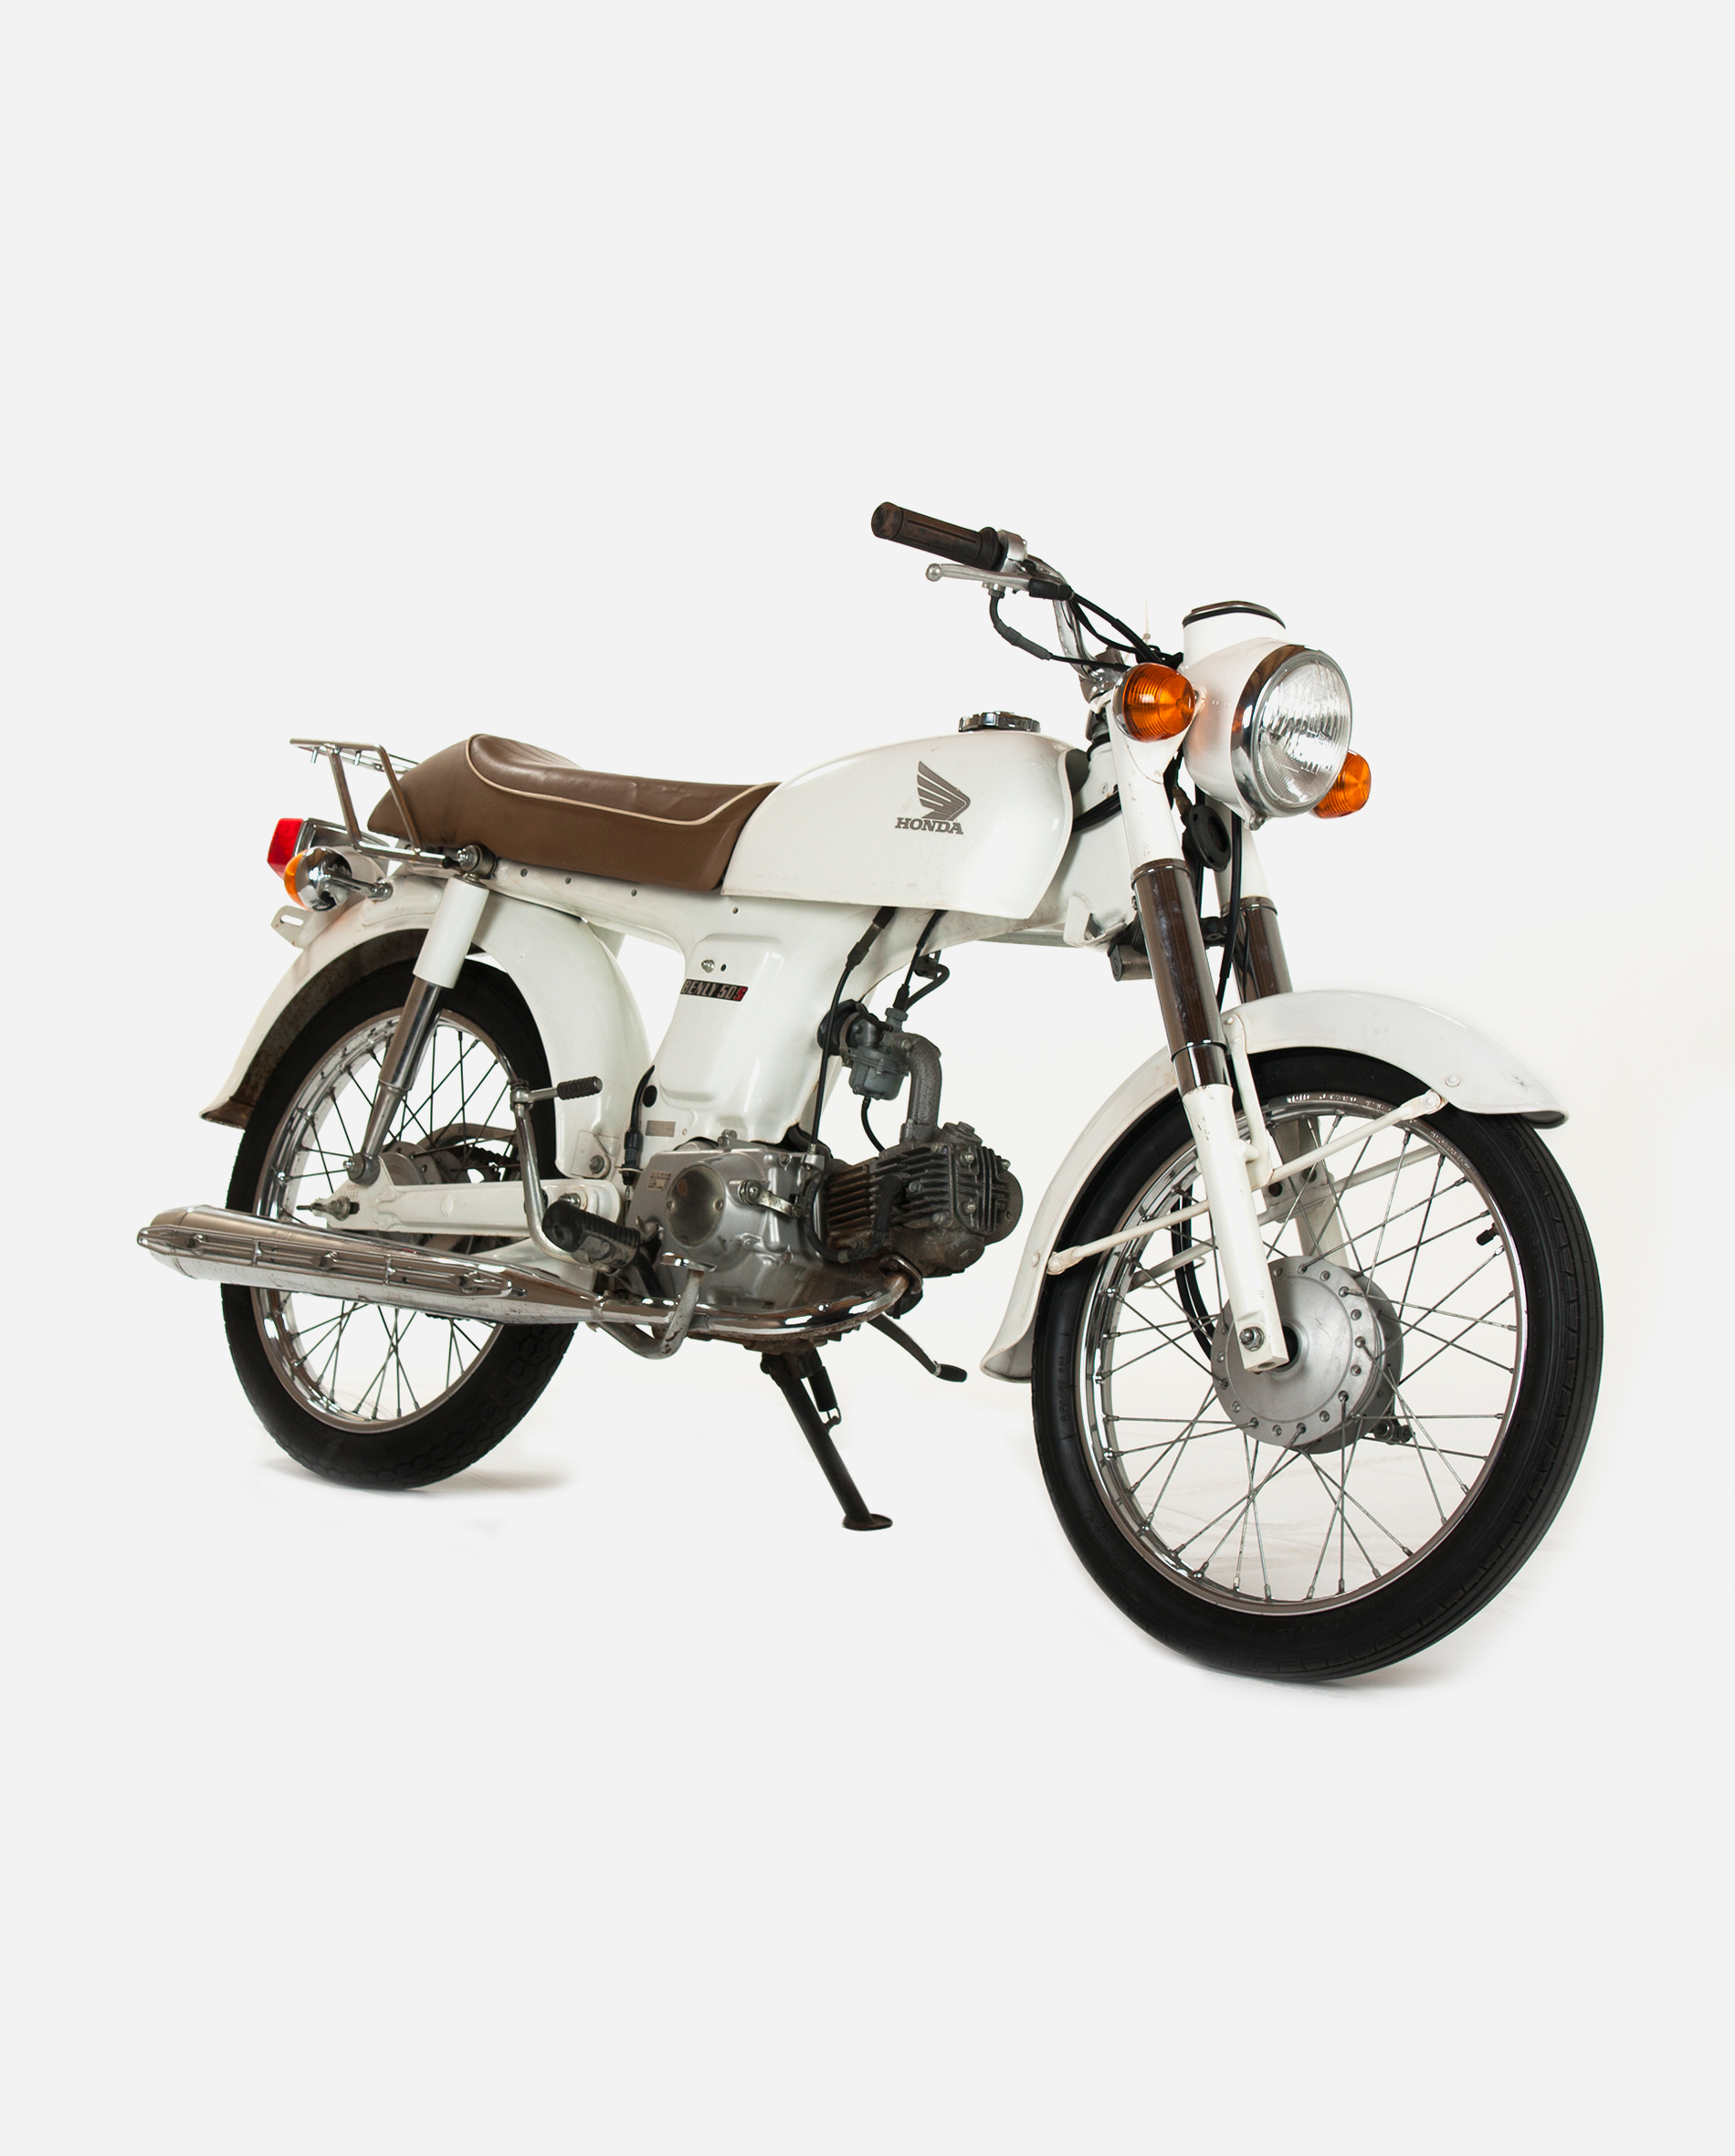 Honda-benly-with-cognac-colored-seat-rv · Fourstrokebarn